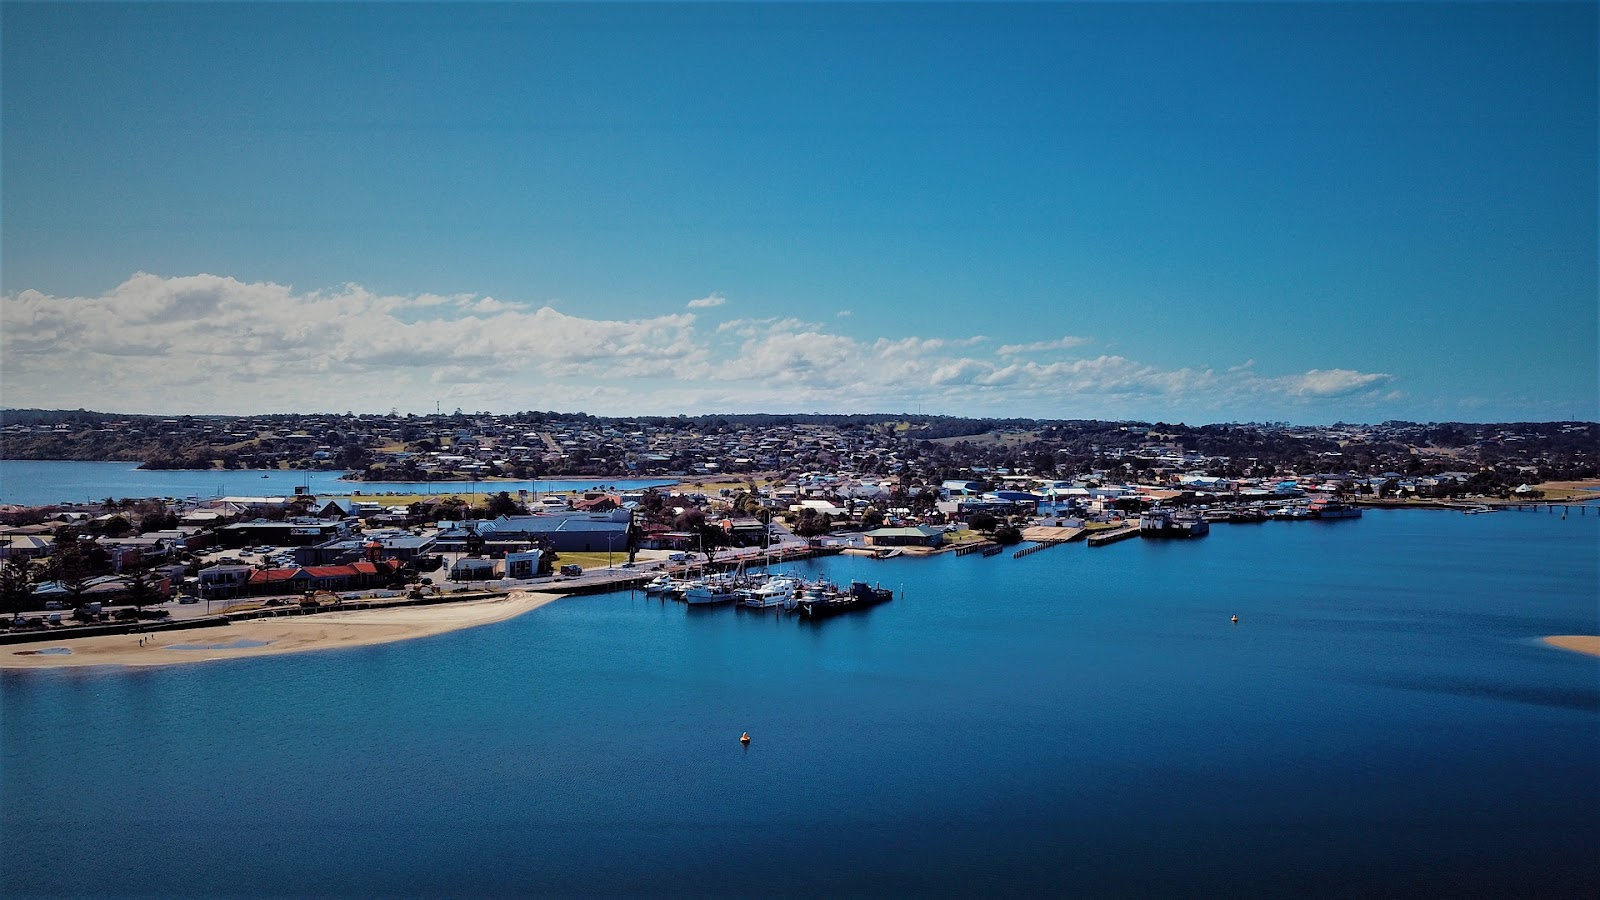 lakes entrance town aerial view on a sunny day from ocean